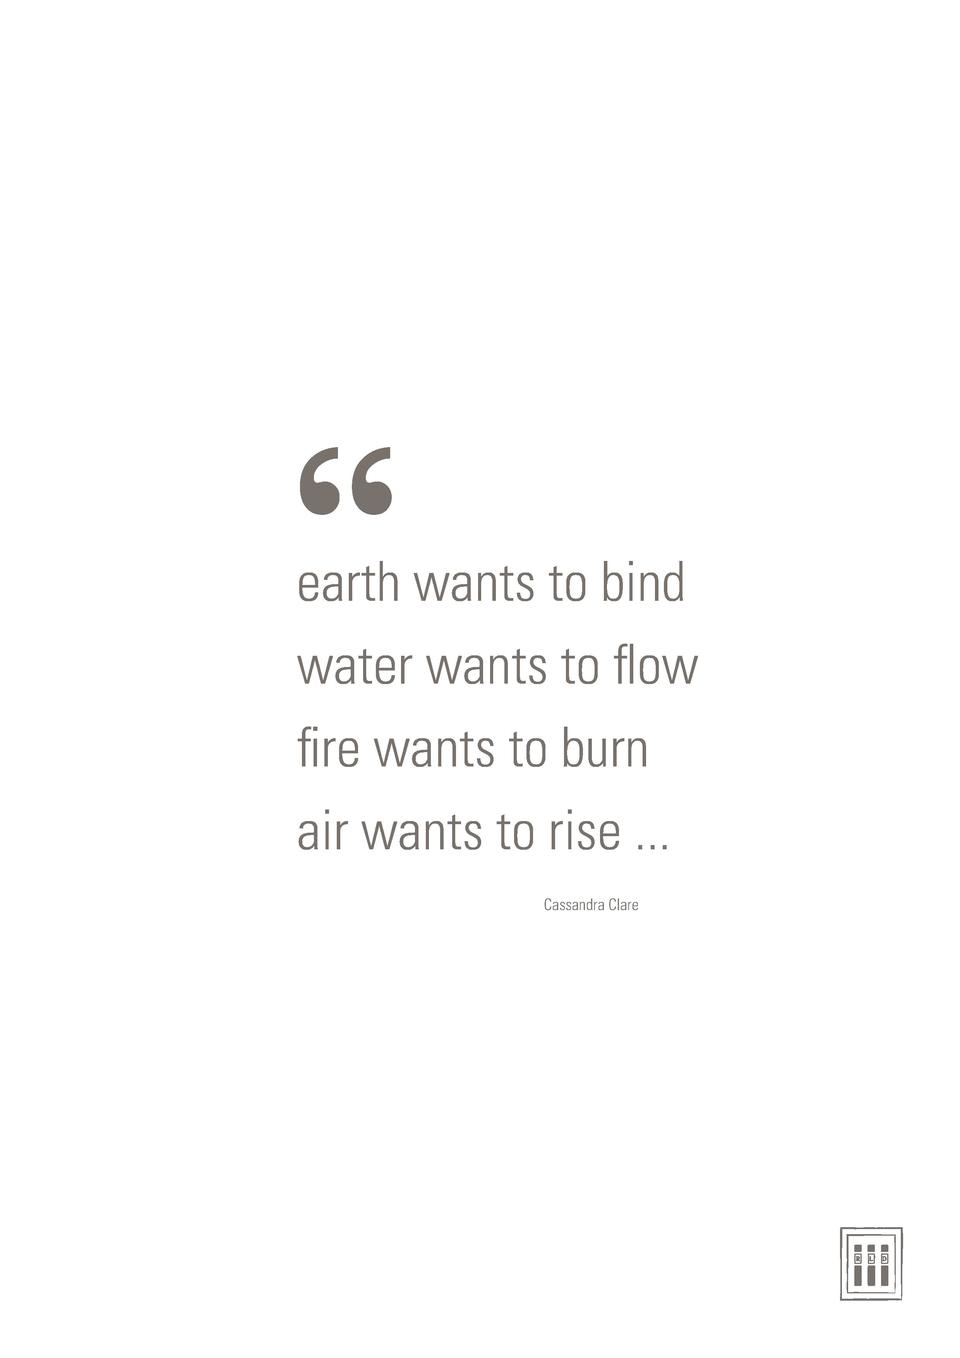 earth wants to bind water wants to flow fire wants to burn air wants to rise ... Cassandra Clare  ruthie L. designs P...